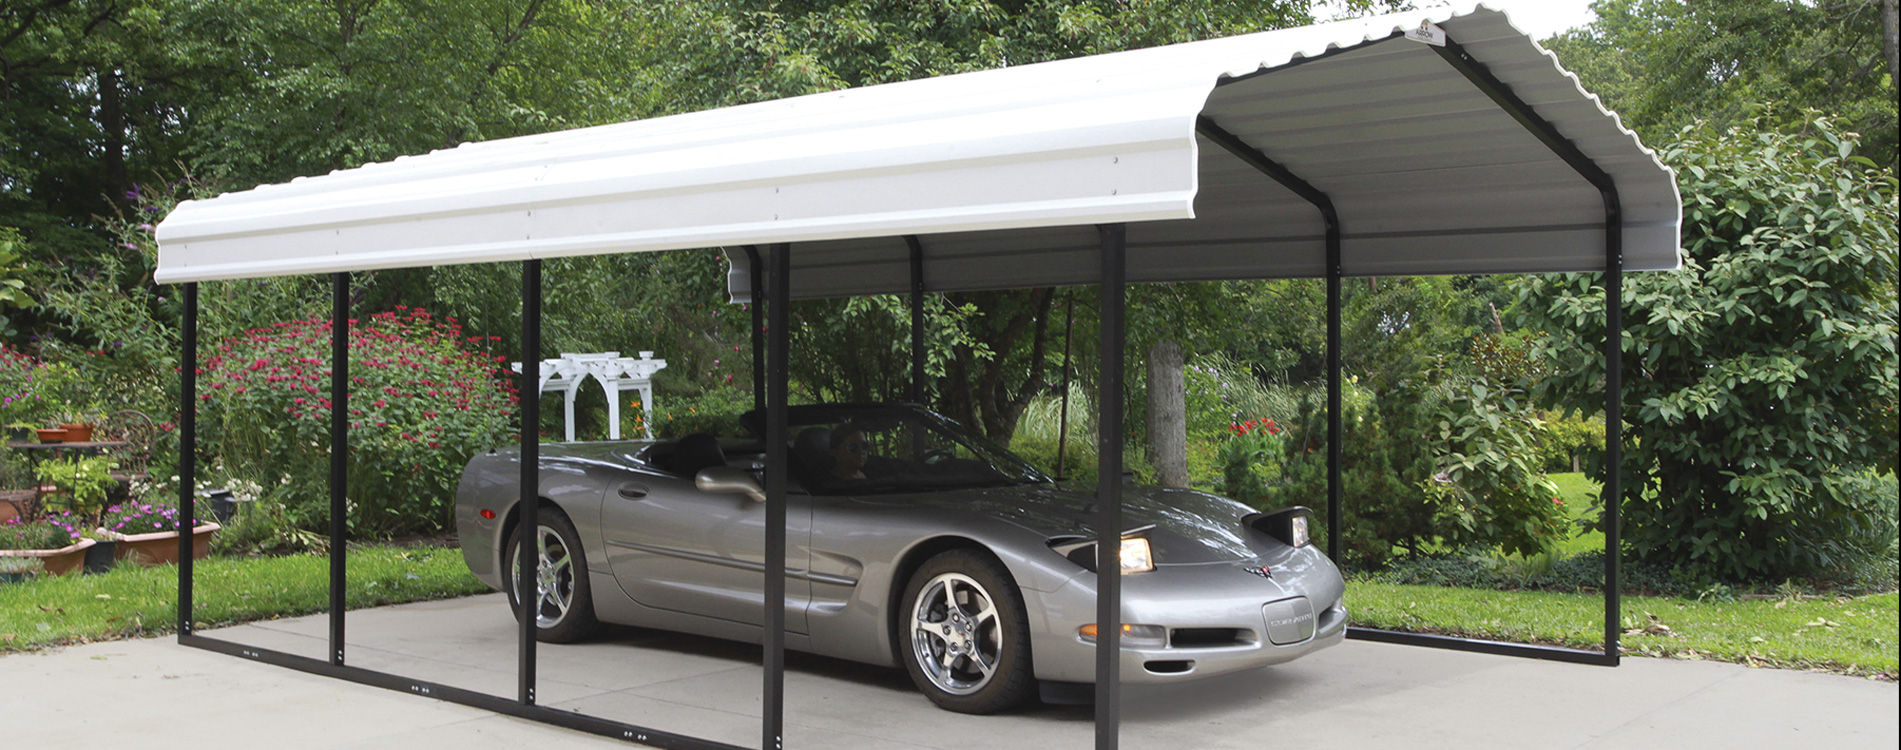 Metal Canopy Carport : Shelters of new england portable garages carports and